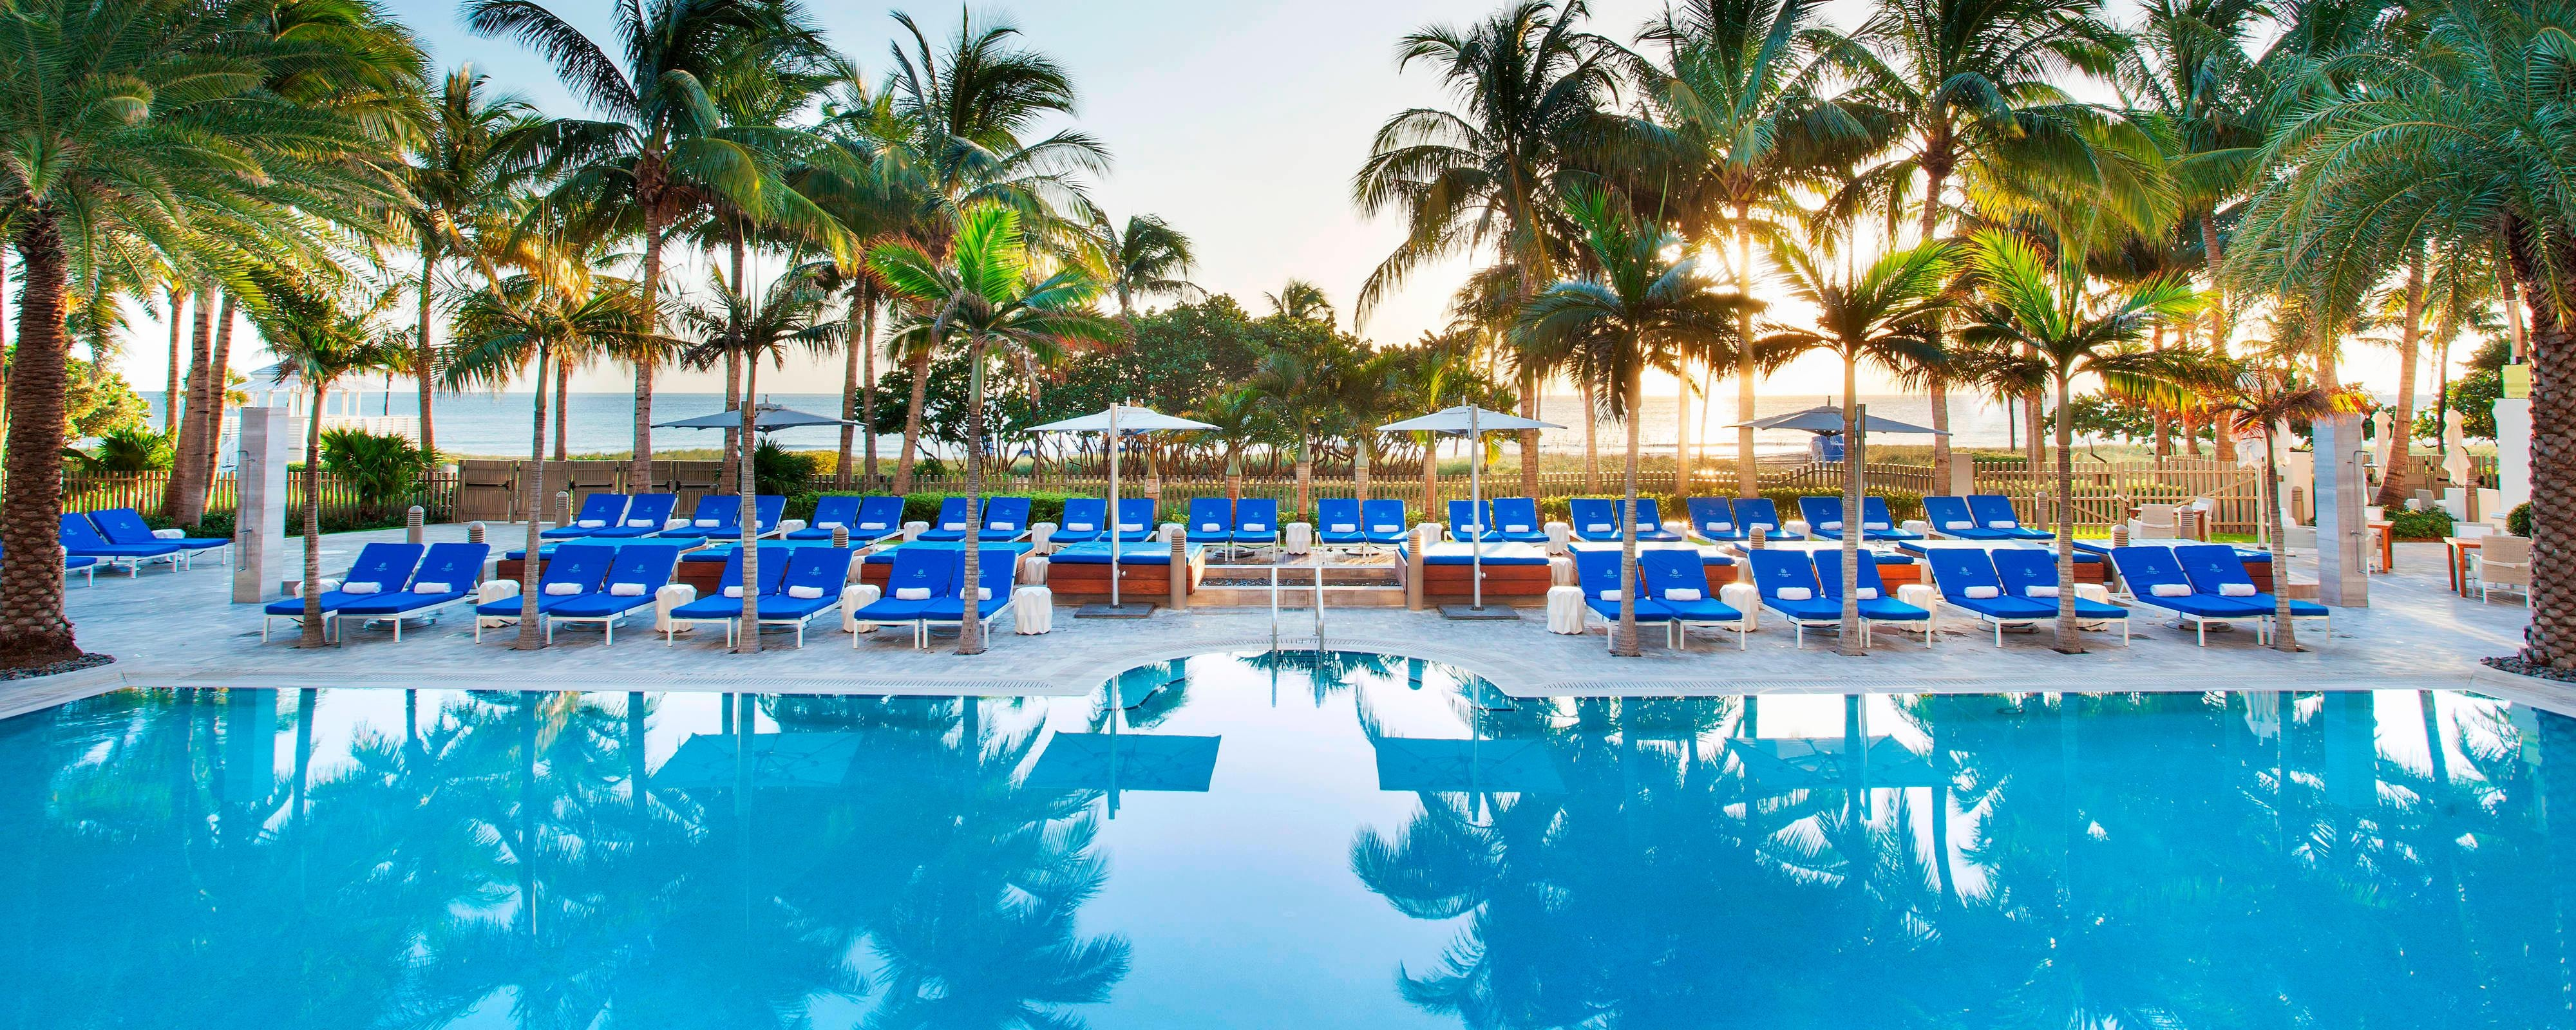 Luxury Hotel In Bal Harbour Miami Beach The St Regis Bal